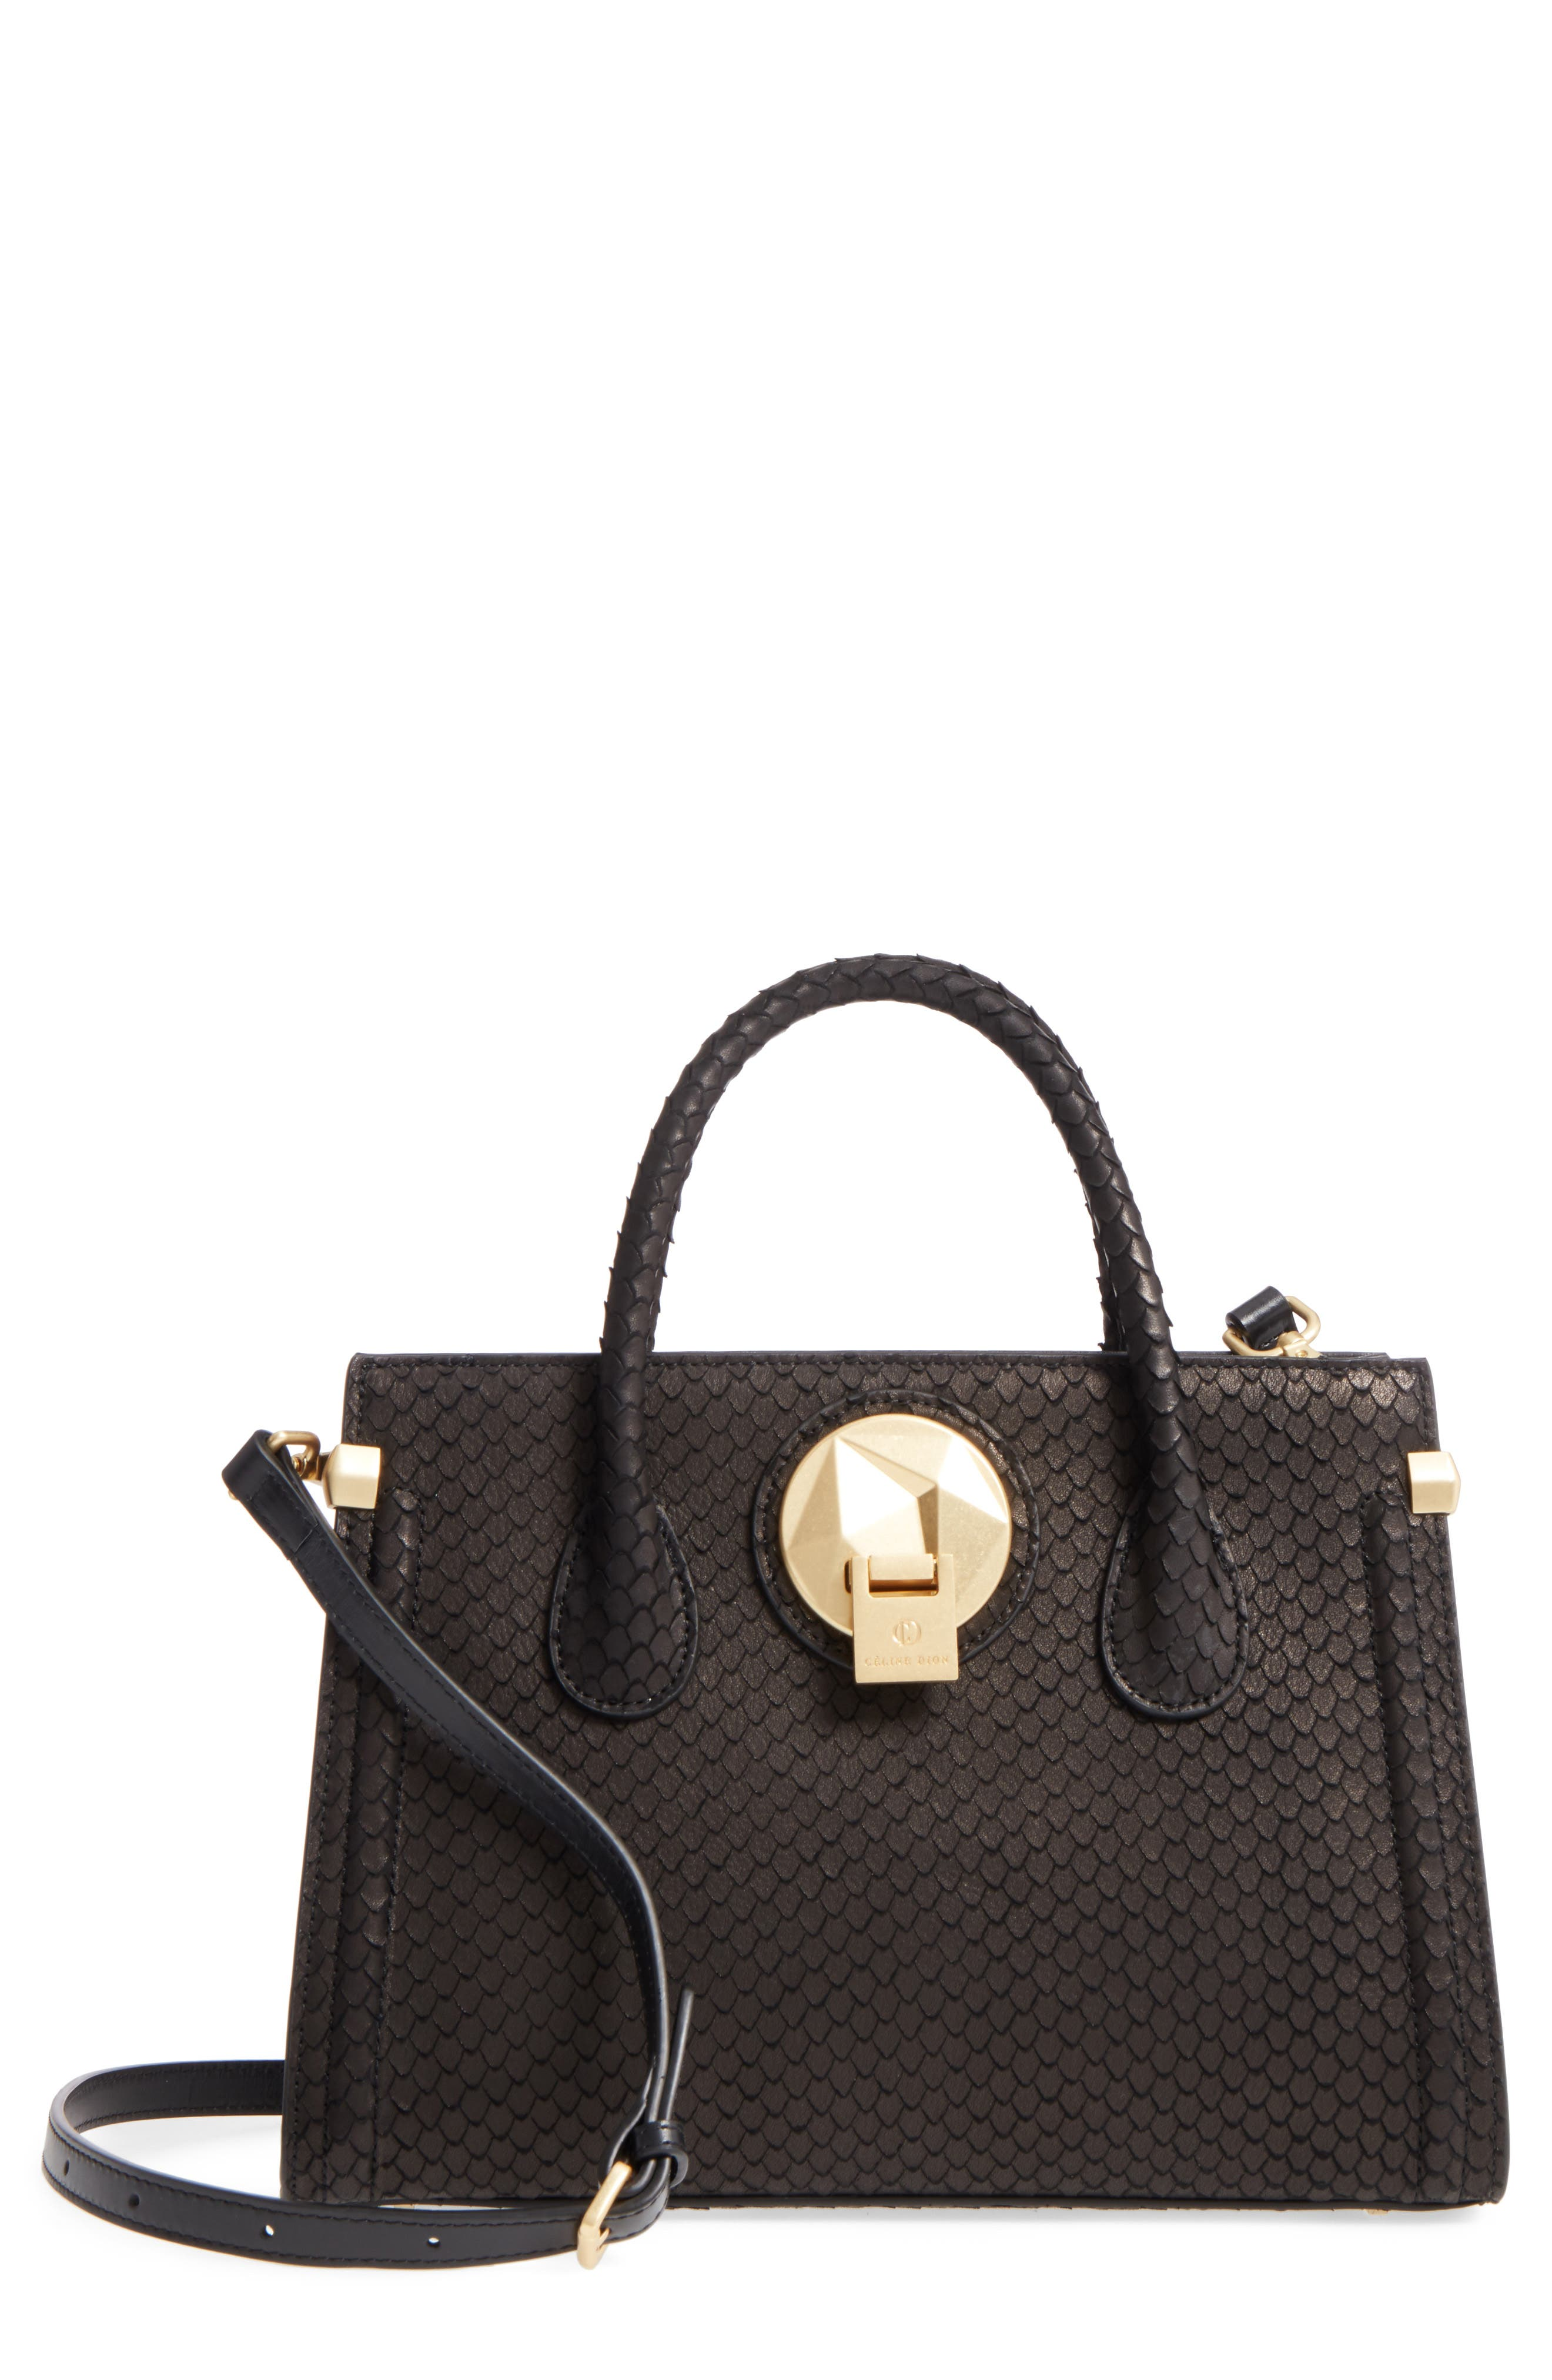 Céline Dion Octave Snake Embossed Leather Satchel,                             Main thumbnail 1, color,                             001